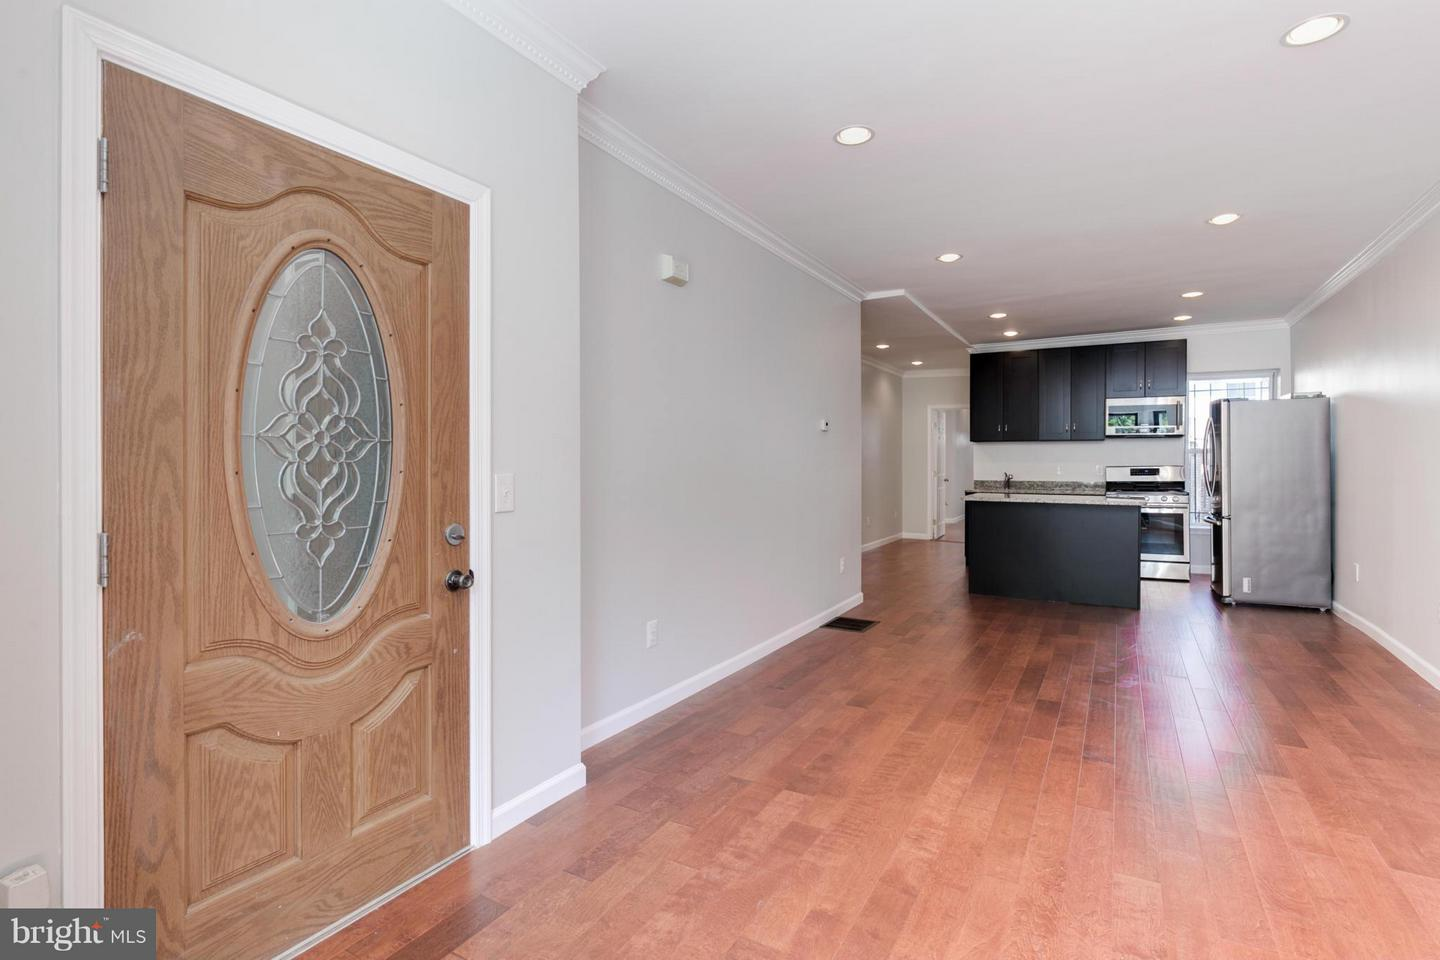 Additional photo for property listing at 137 P St NW 137 P St NW Washington, District Of Columbia 20001 United States